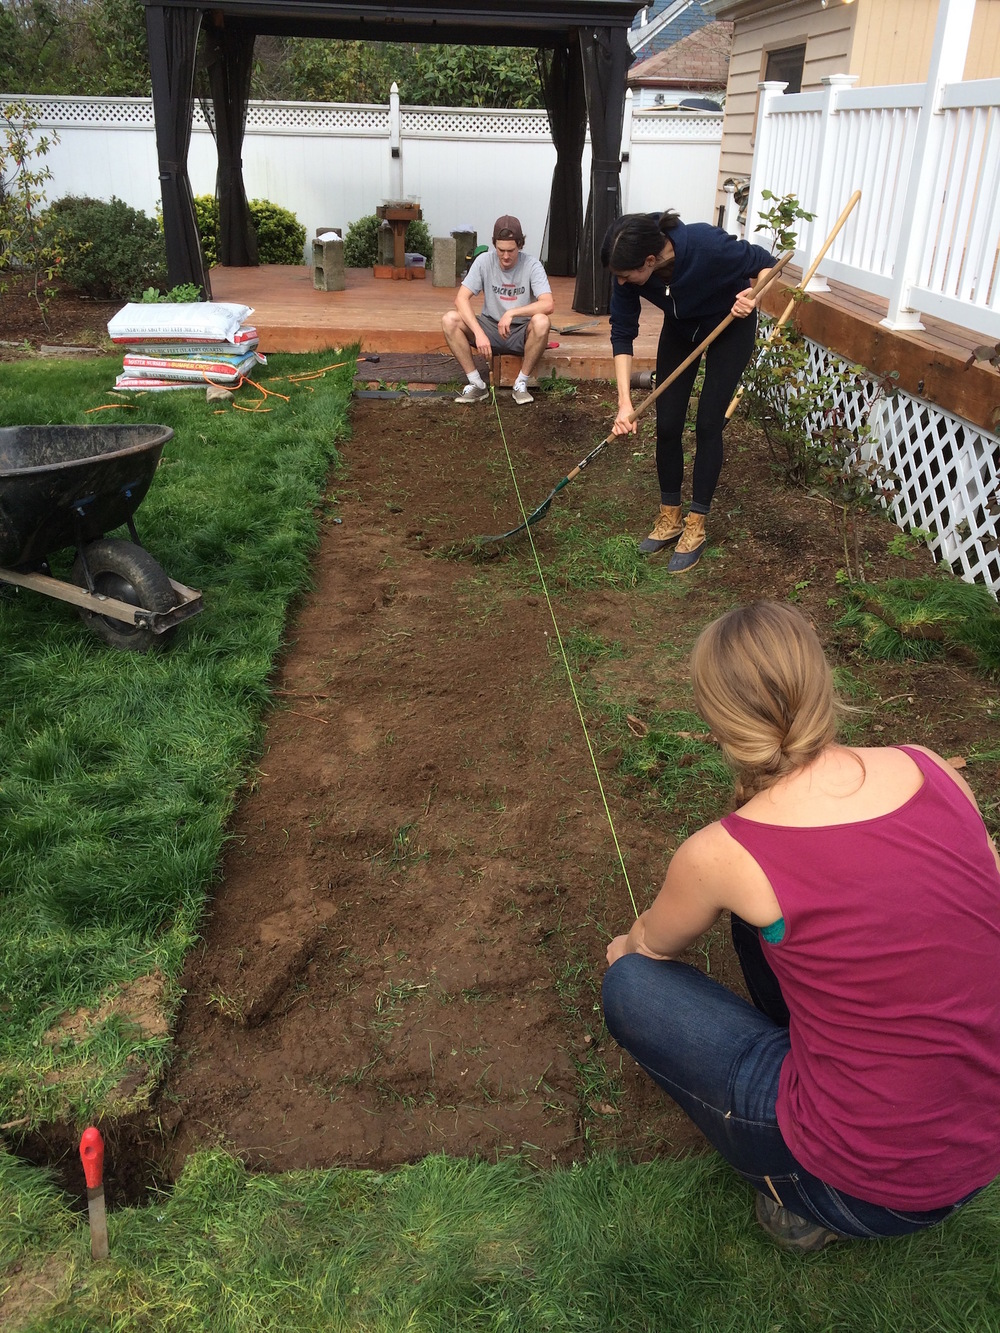 "For in-ground garden beds, 36"" width is ideal: Narrow enough to reach the center, wide enough to make efficient use of your space."